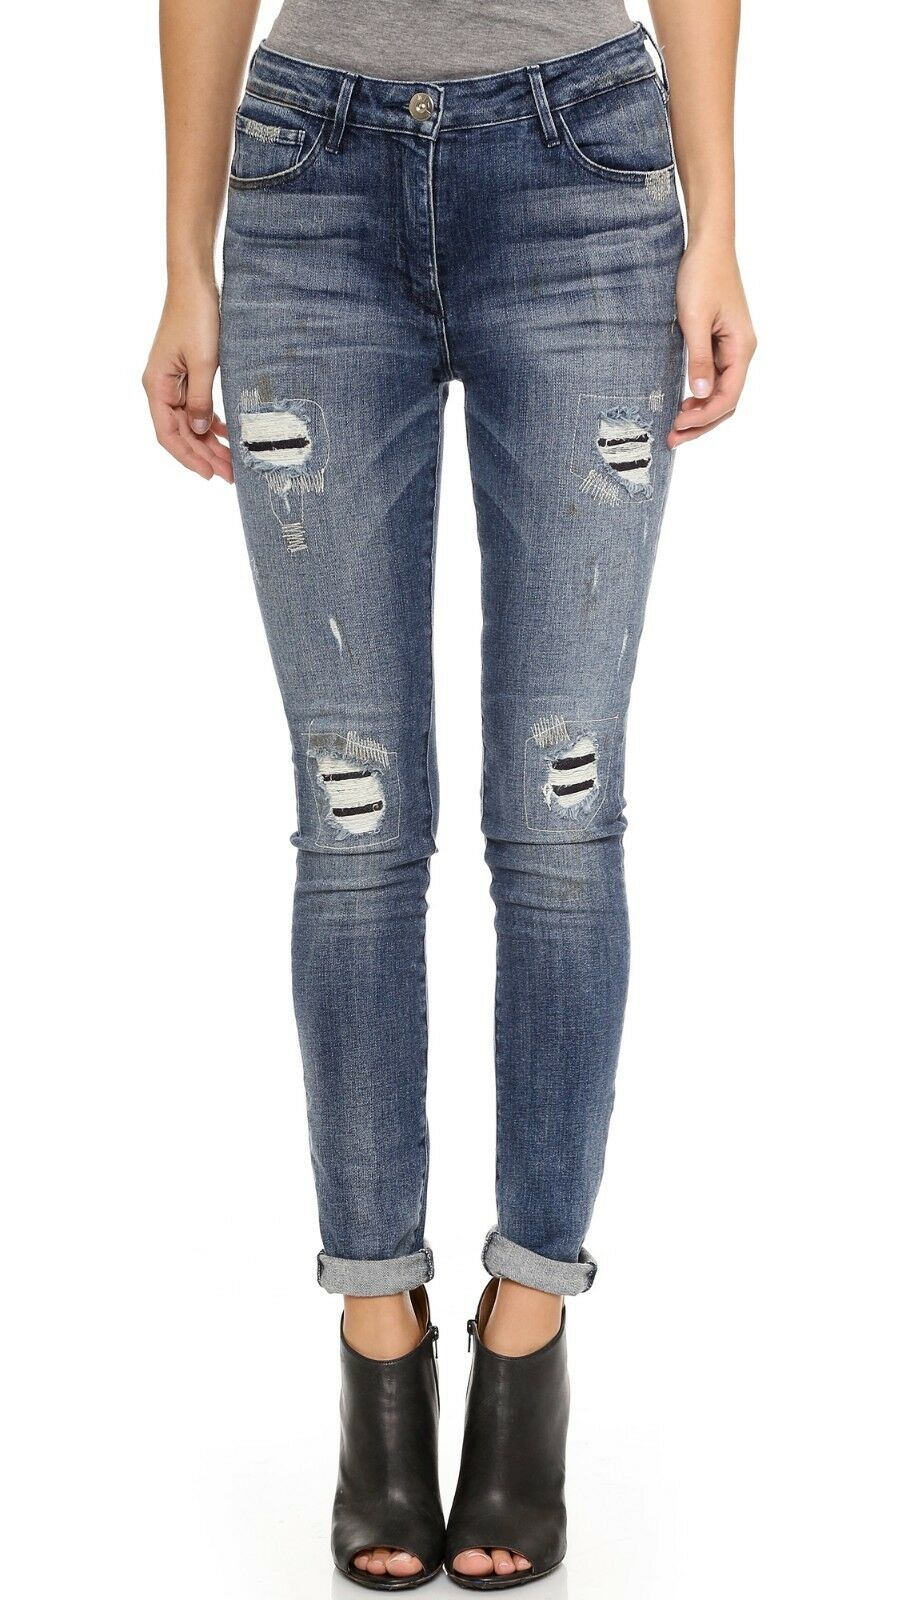 285 NEW 3x1 Jeans W3 High Rise Skinny Jean in Cypress (Mended) - Size 25